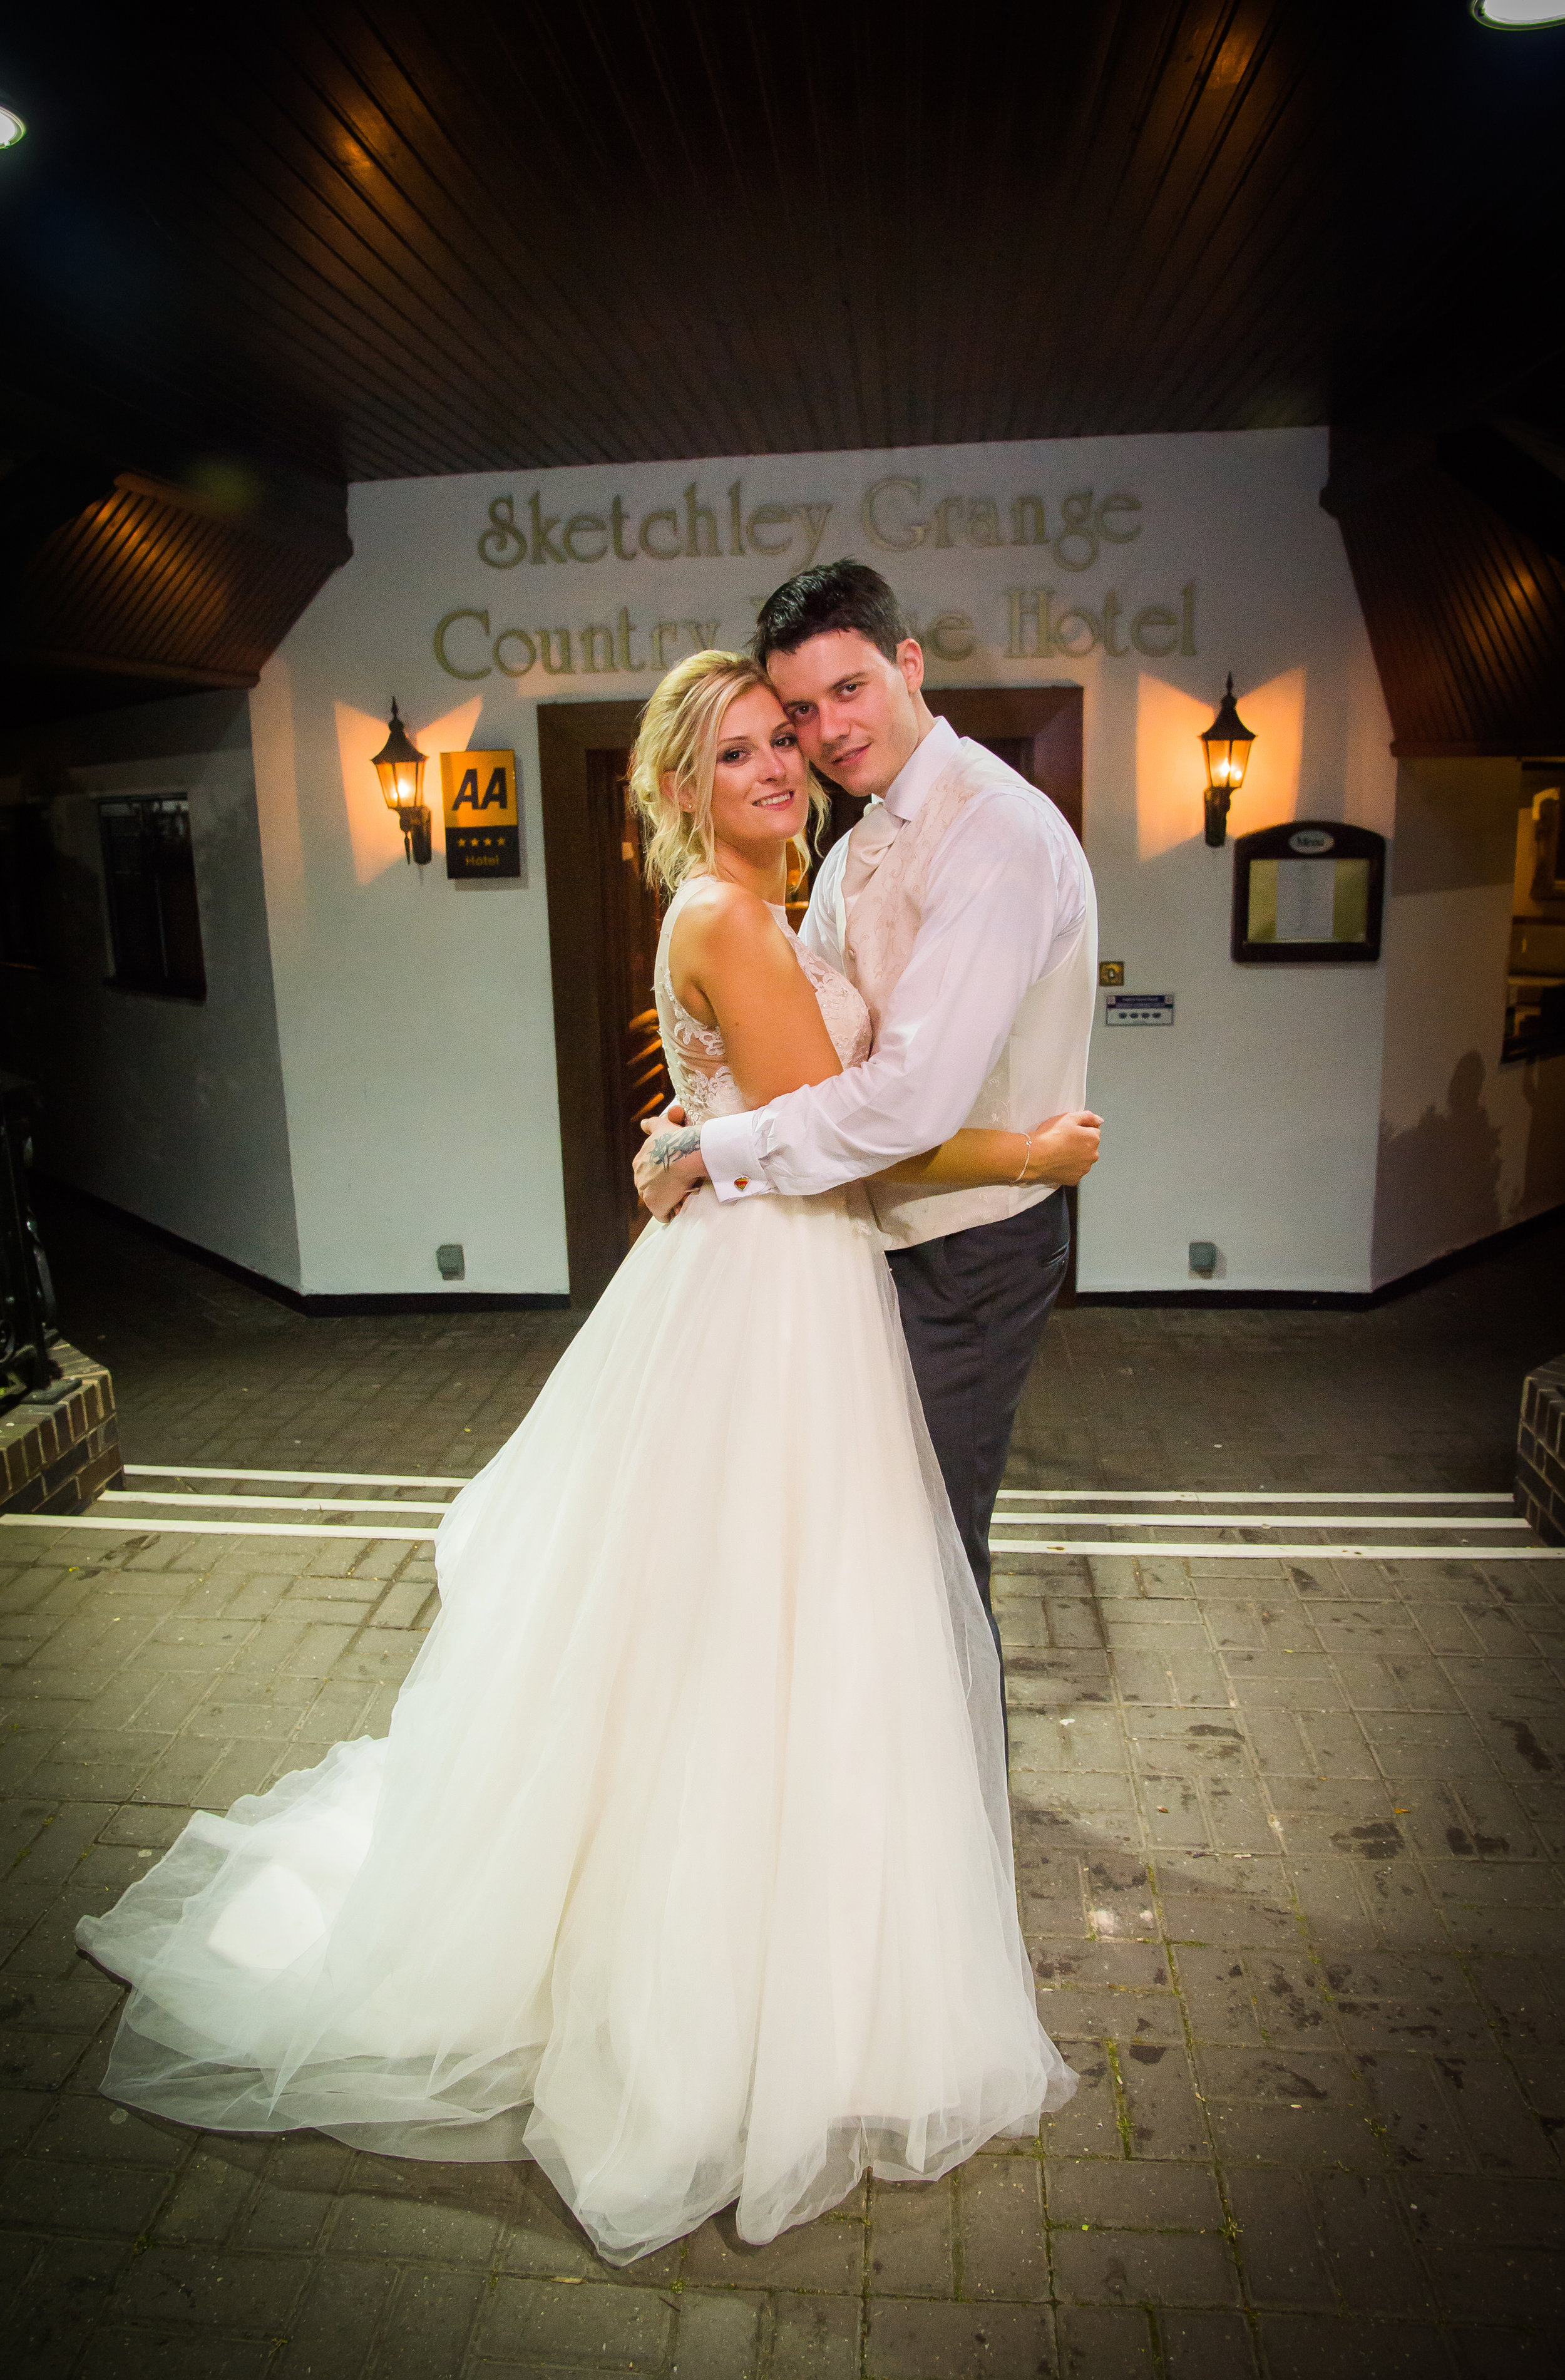 Bride and groom evening Sketchley Grange Hotel Leicestershire